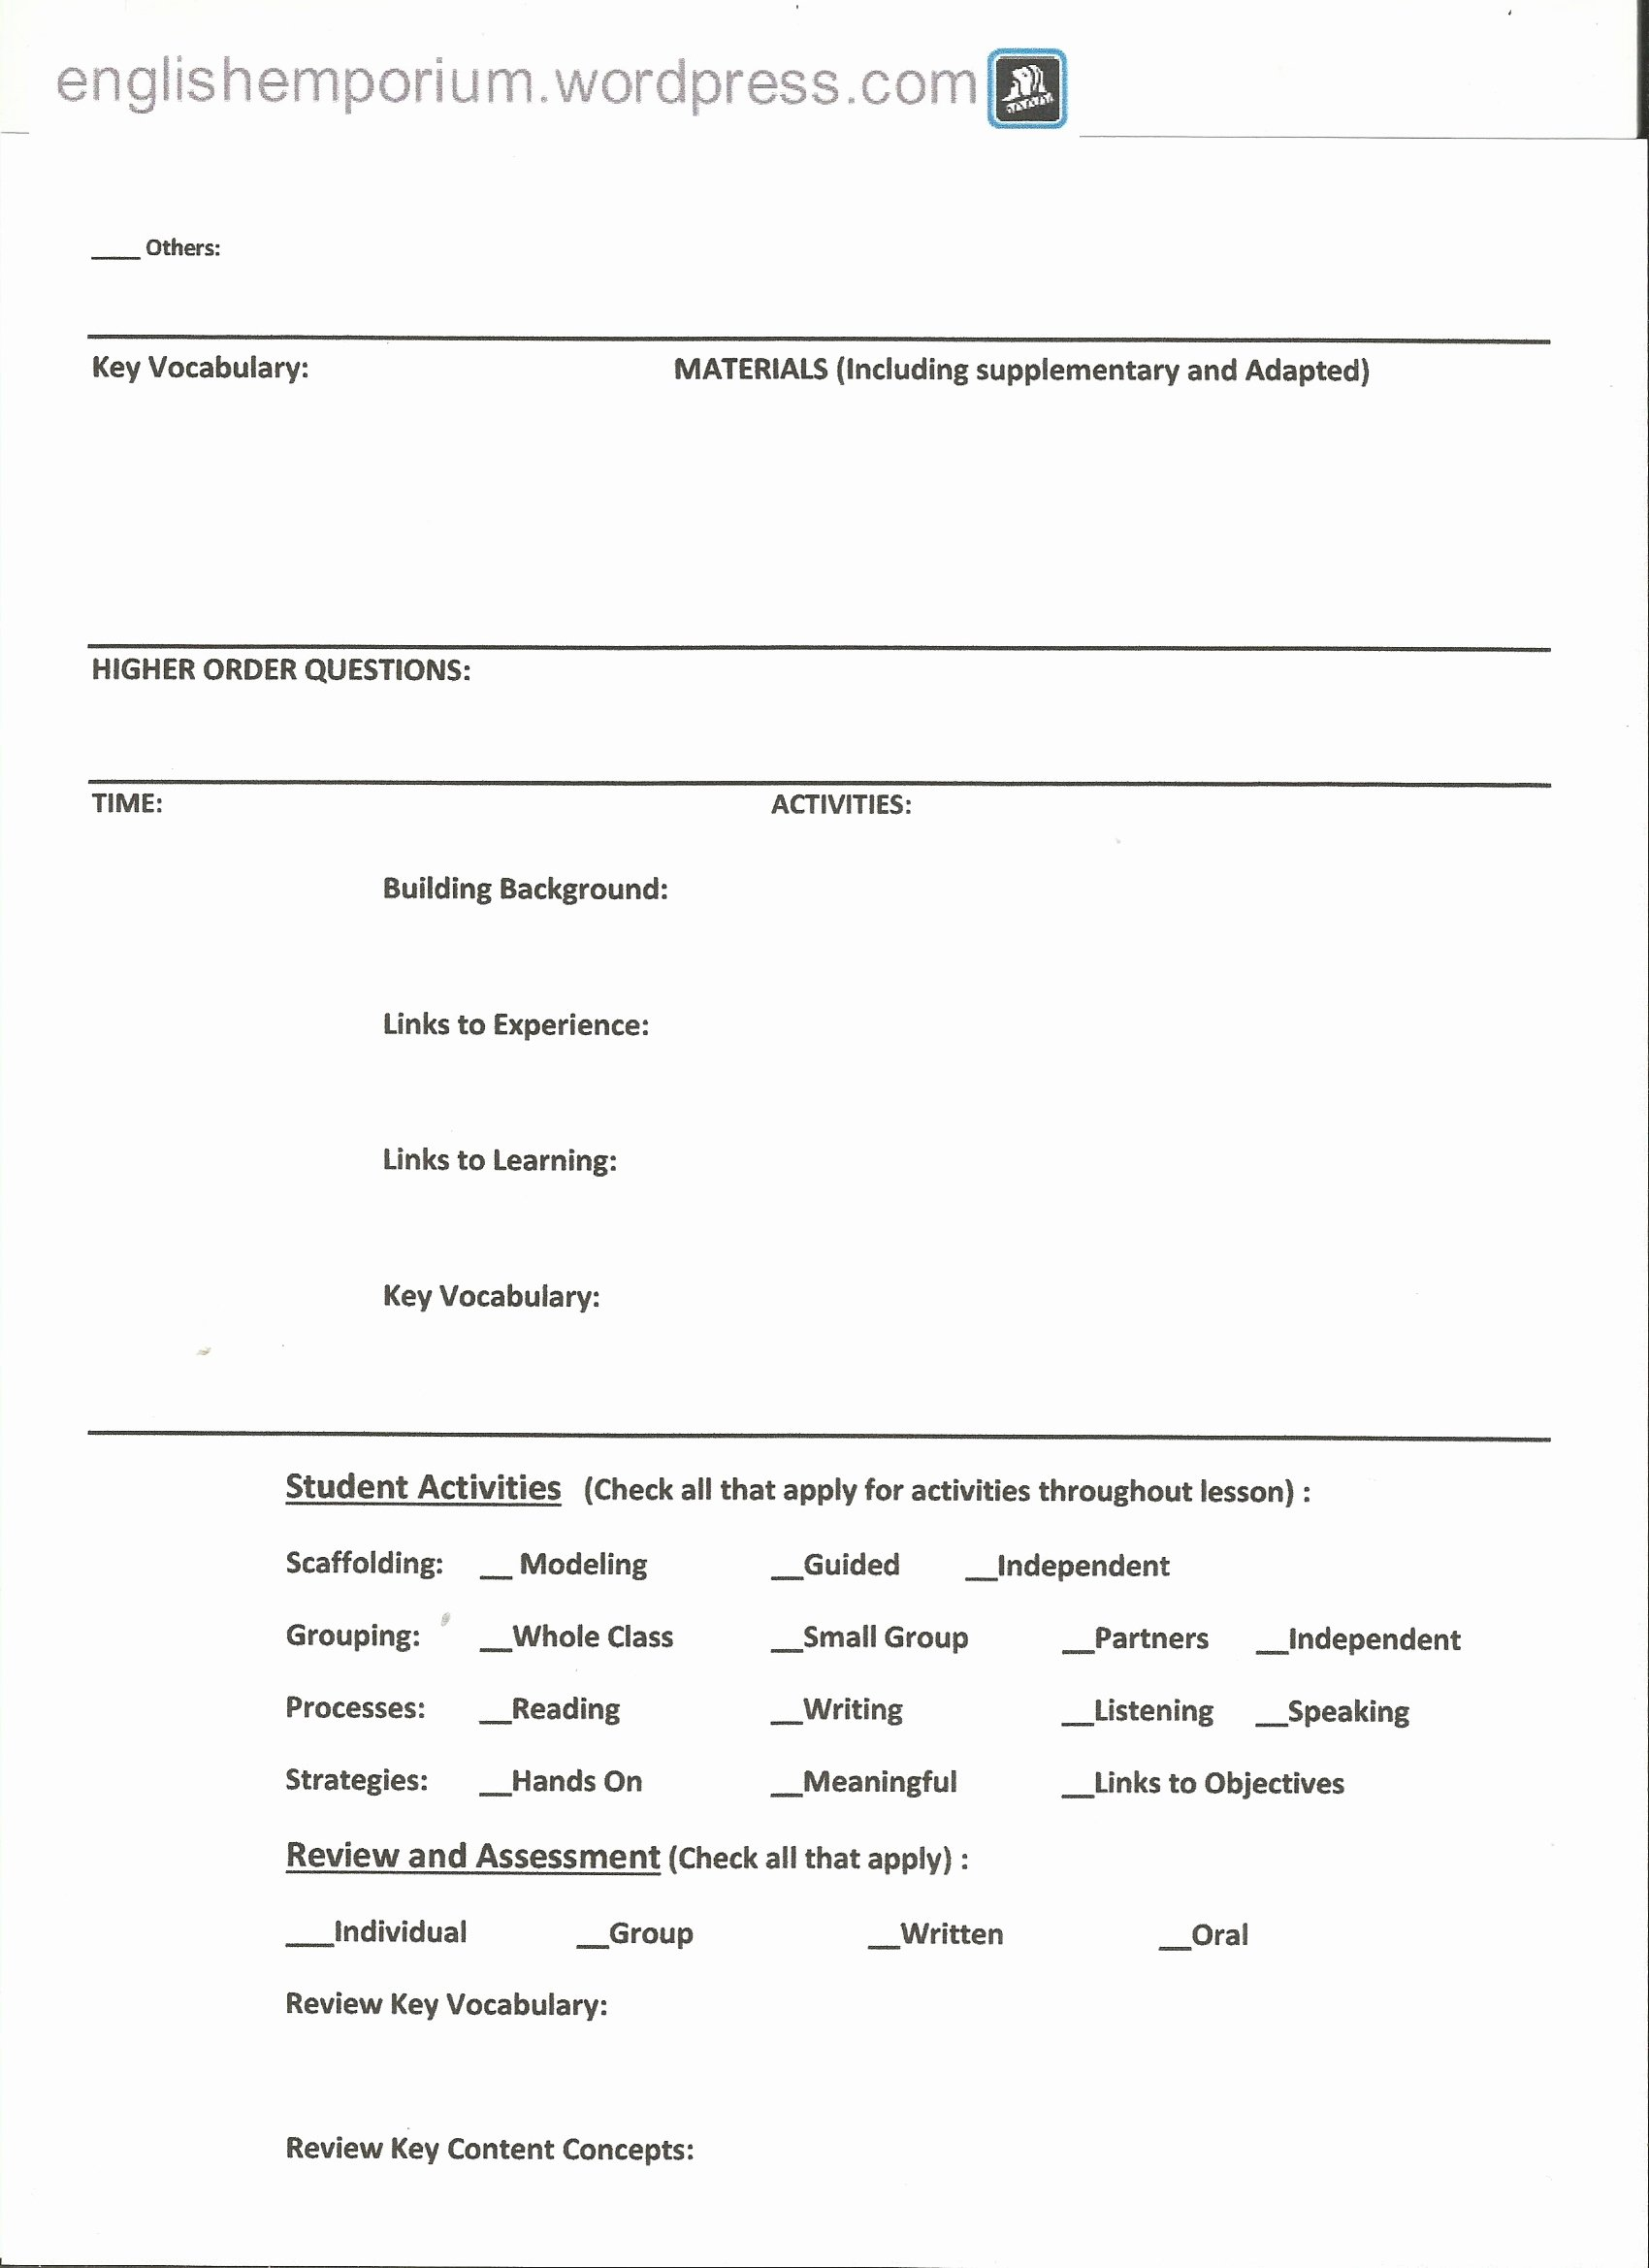 Siop Lesson Plan Template 2 Elegant Siop Lesson Plan Checklist for 7th Grade Geography Page2